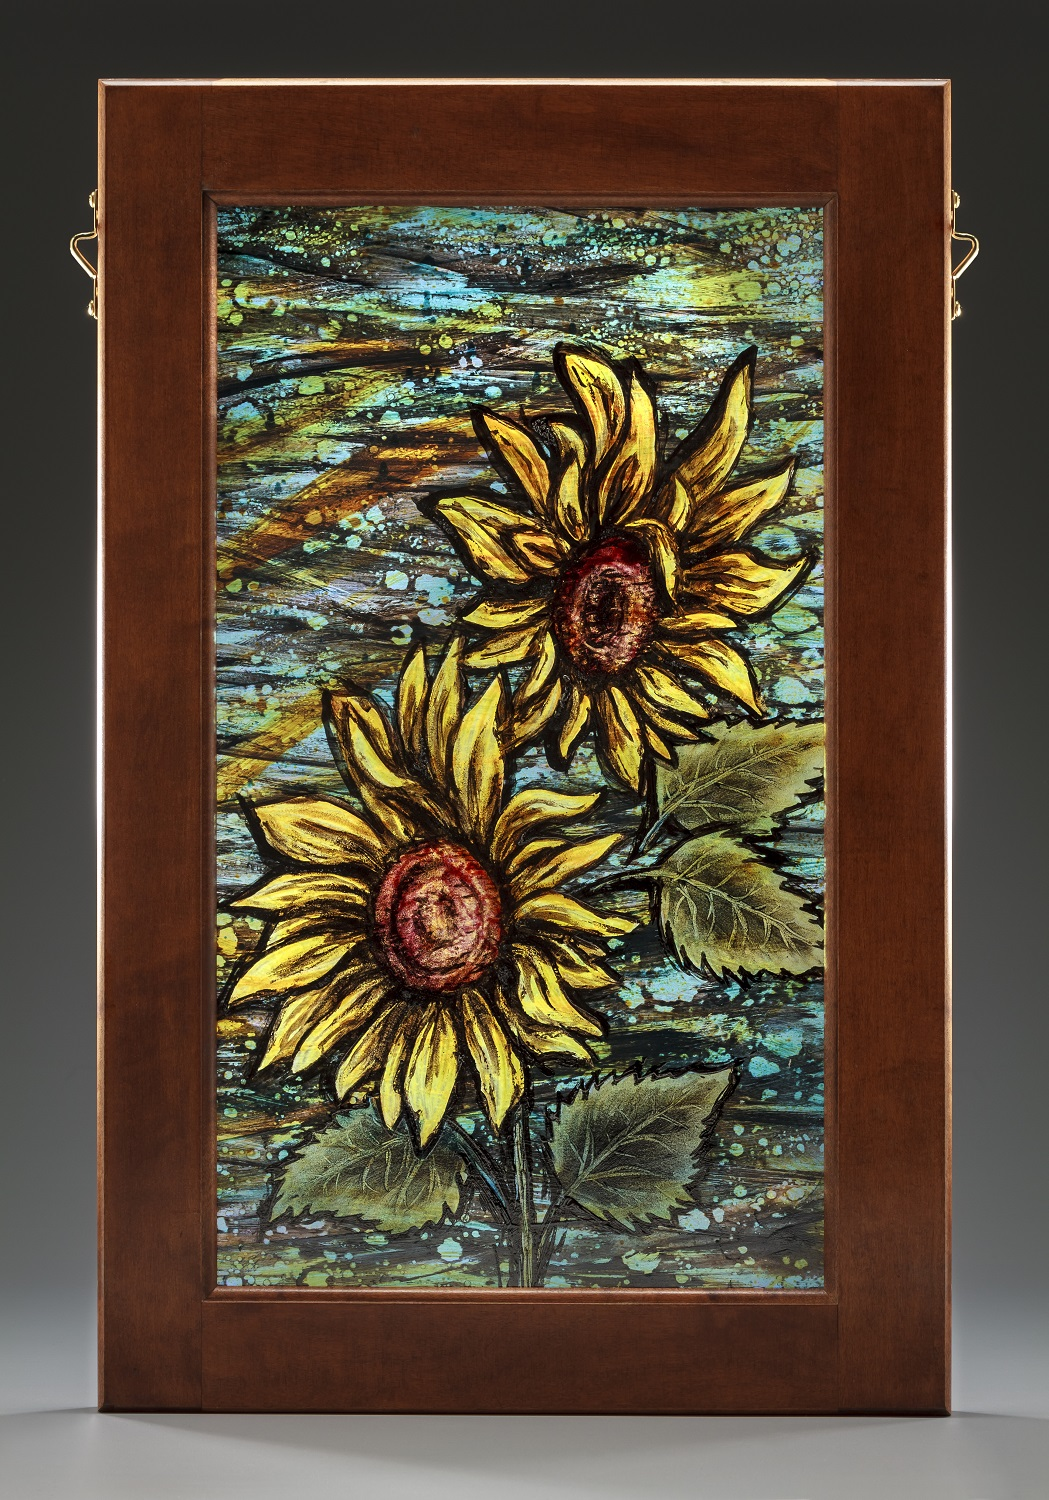 Painted glass sunflowers